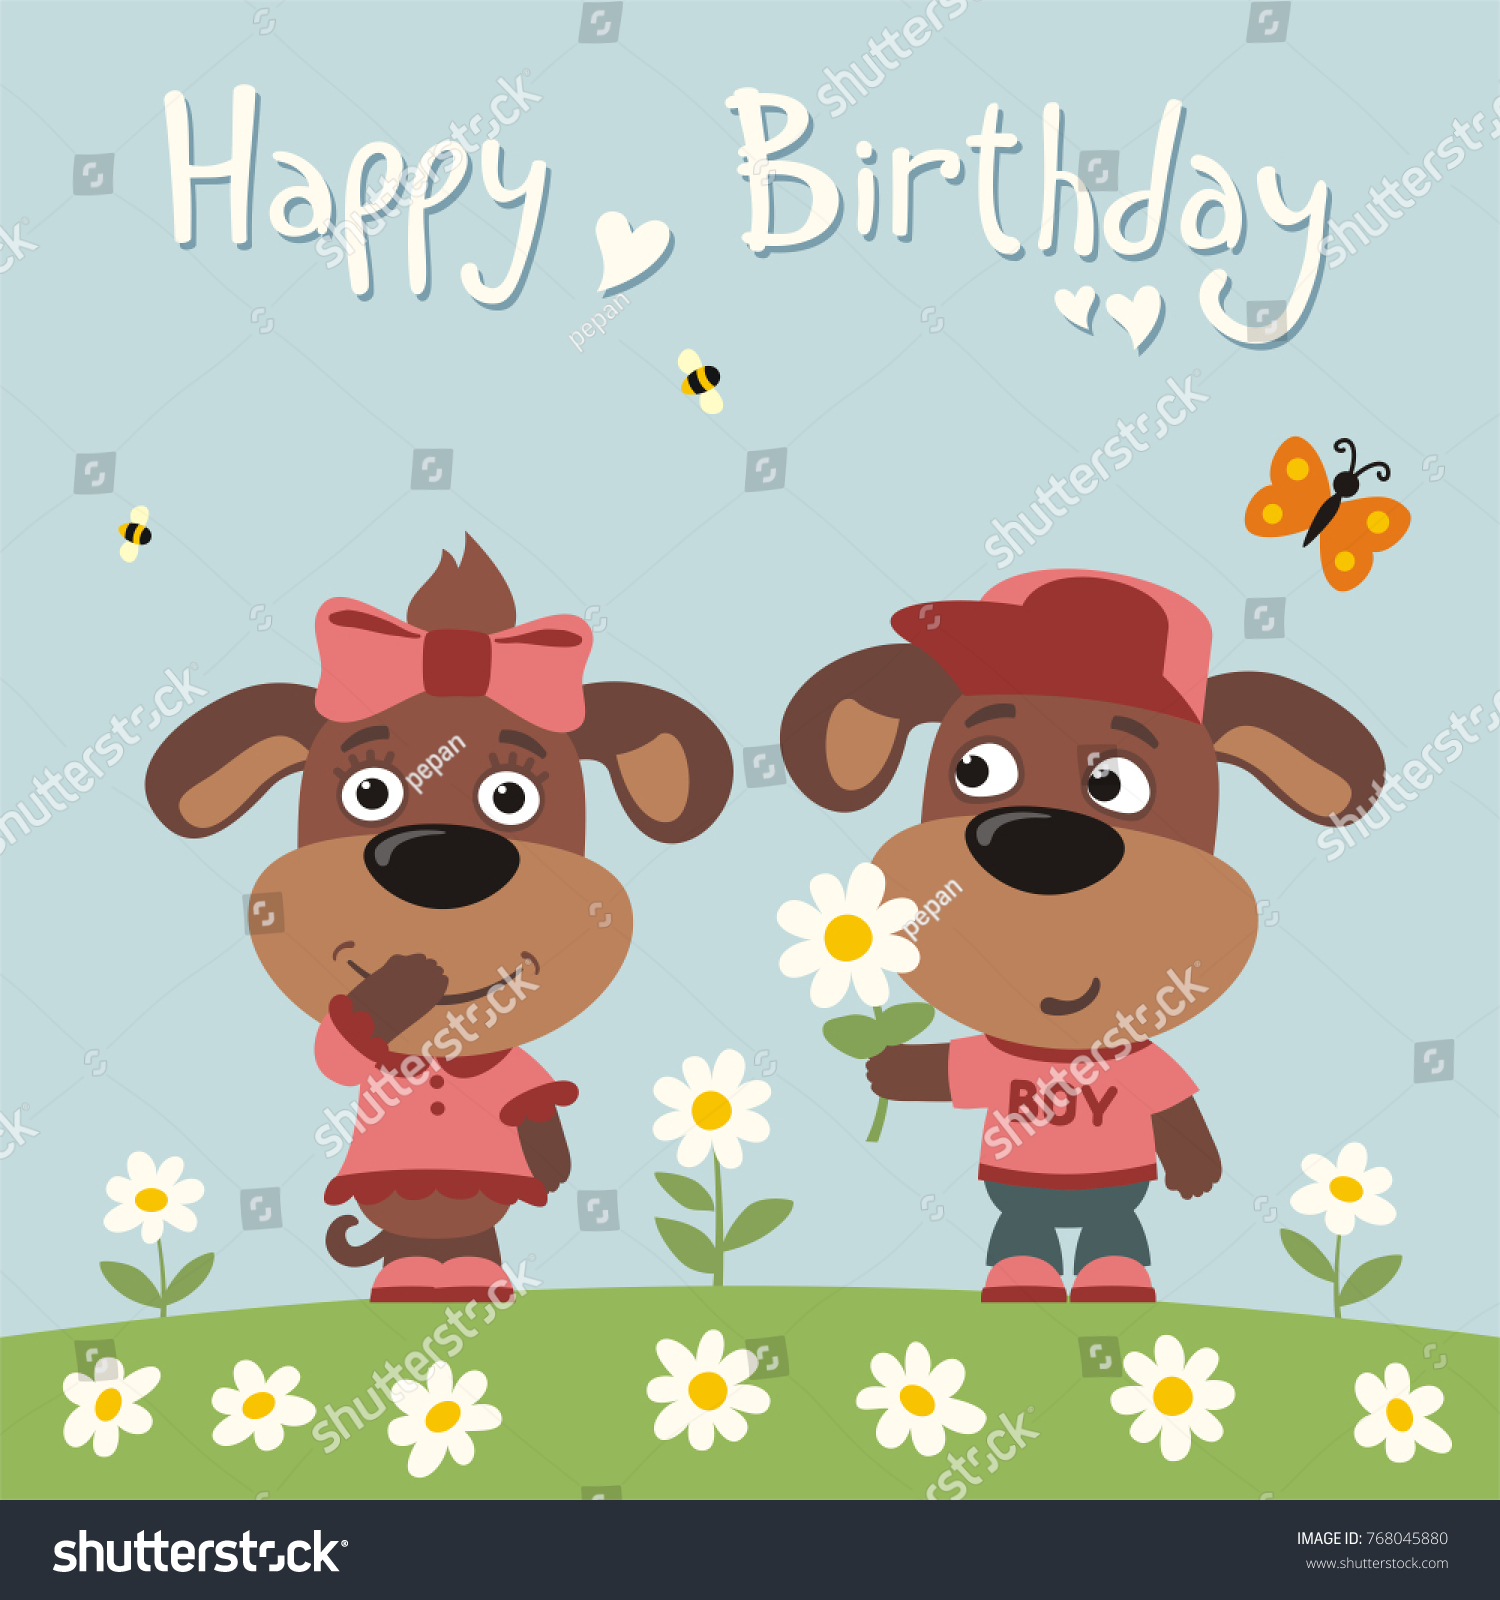 Happy Birthday Dog Cards Image collections Free Birthday Cards